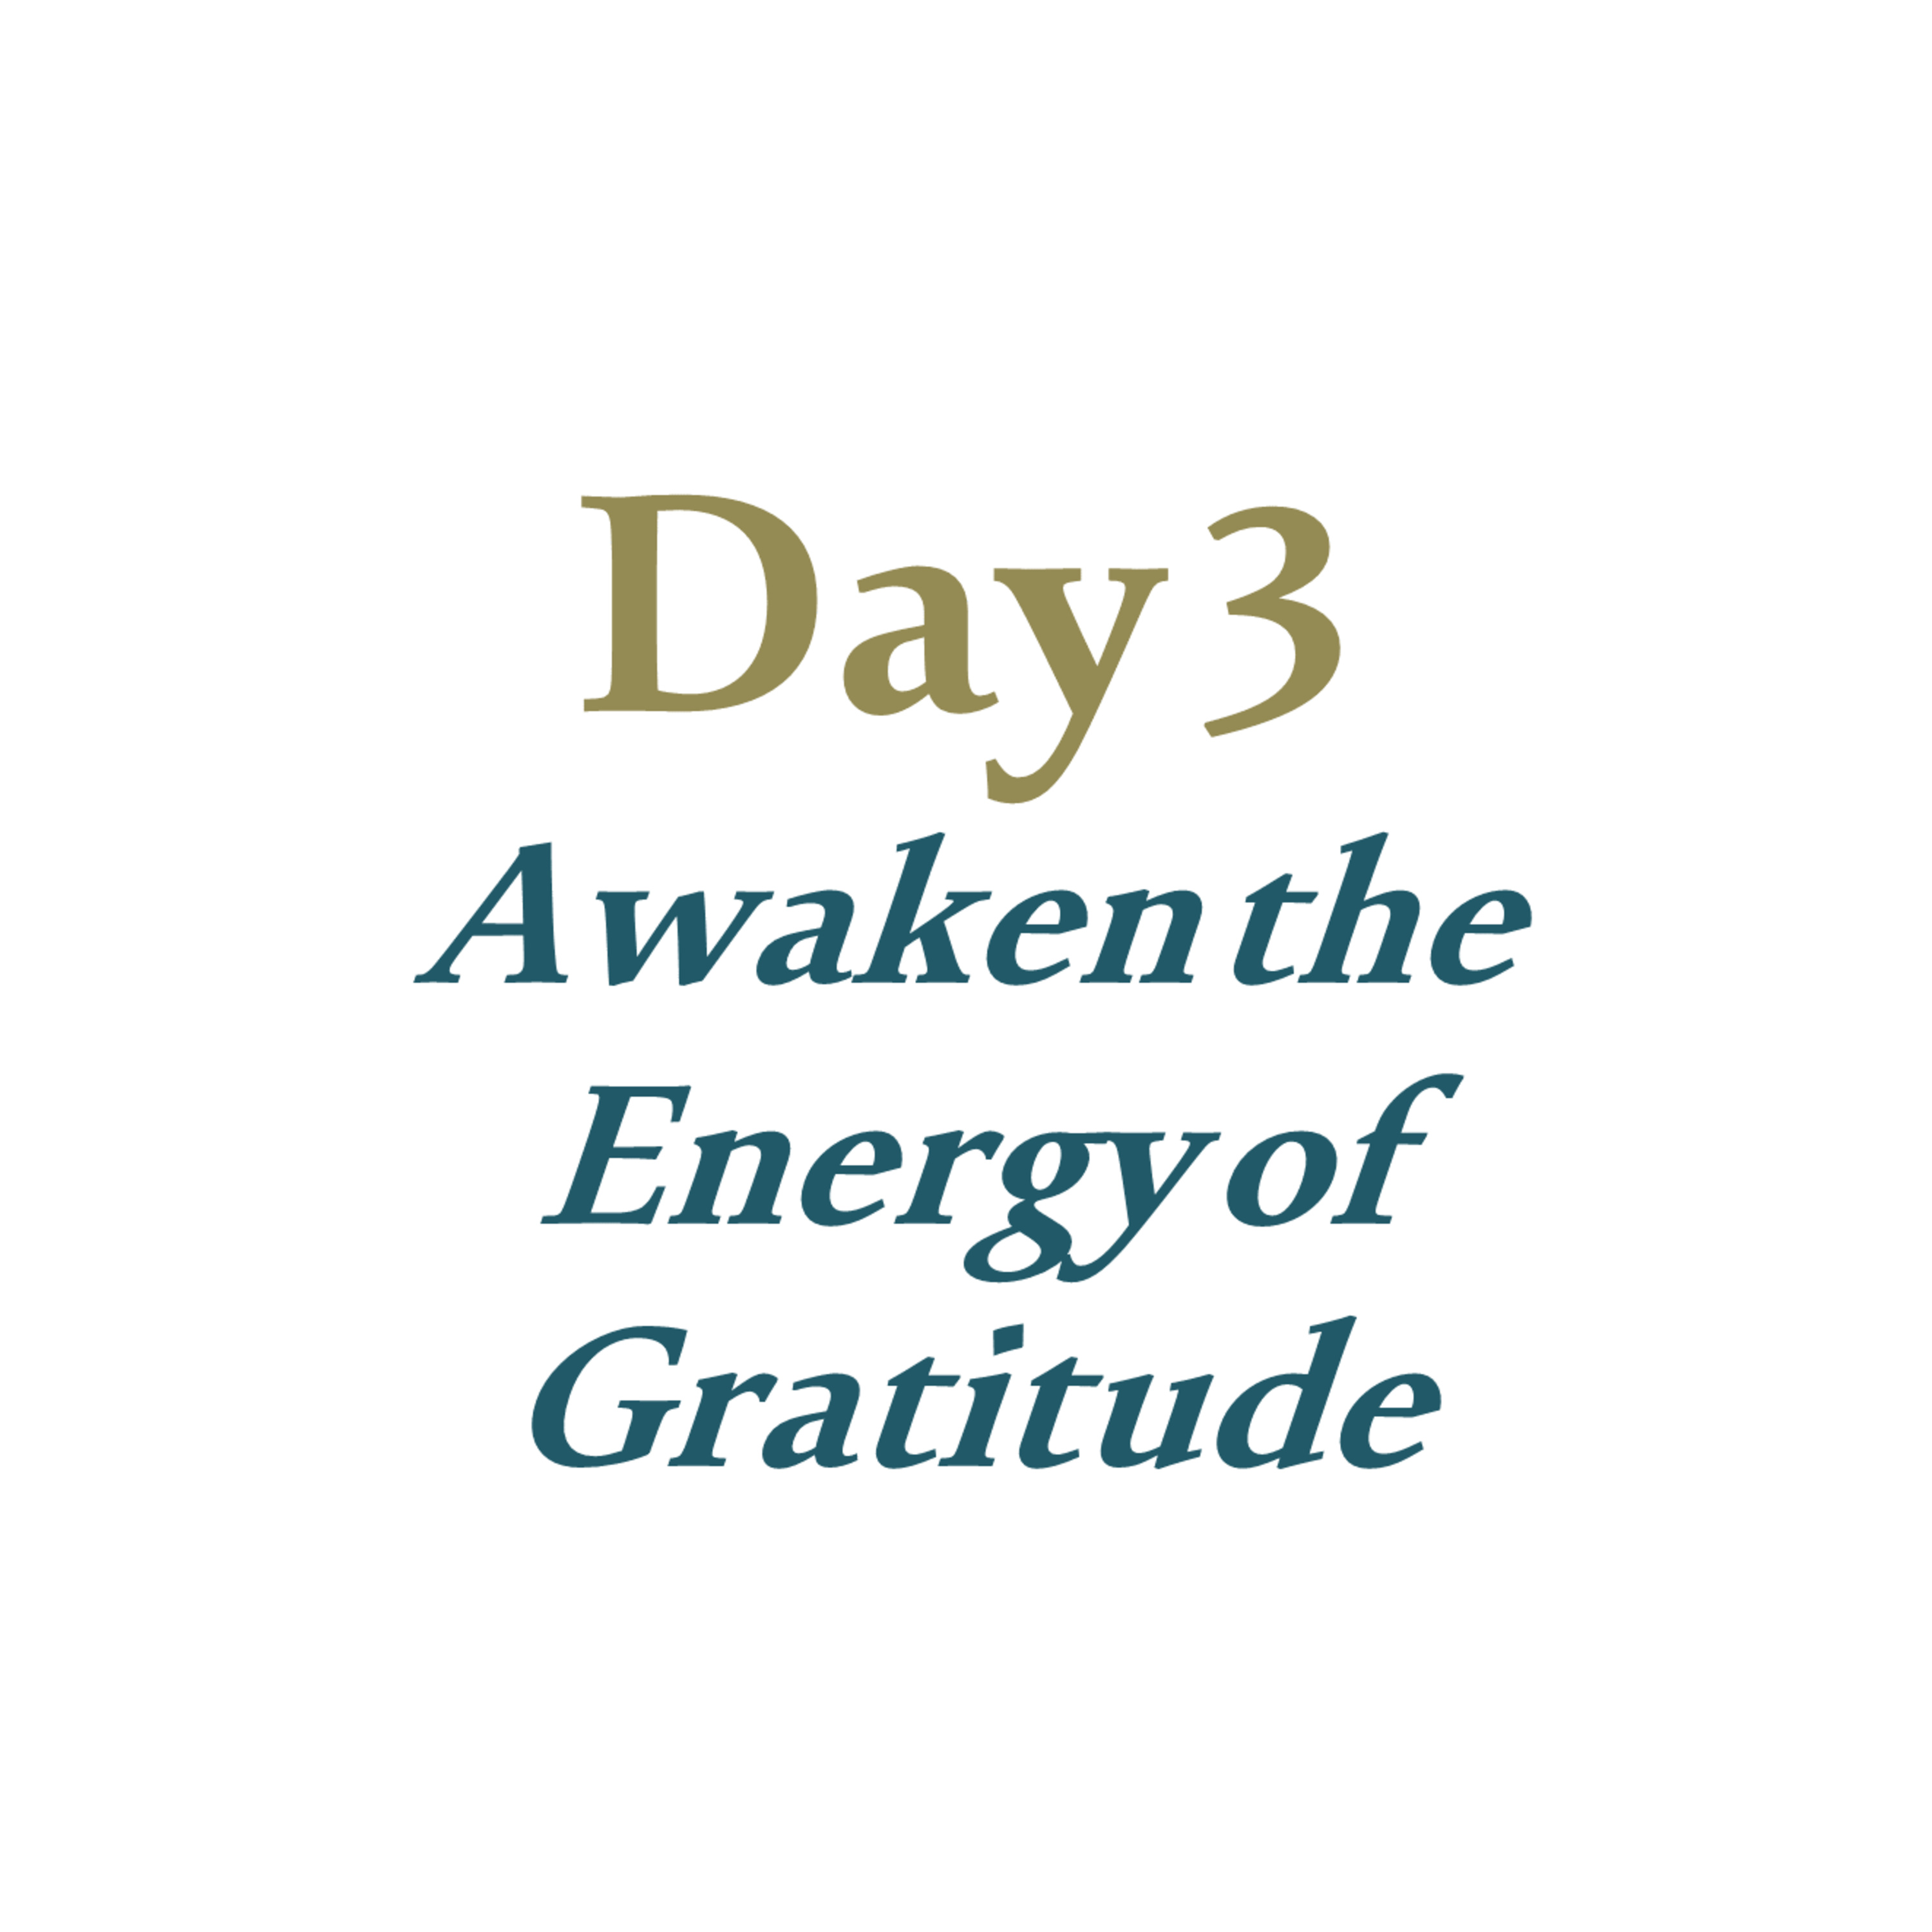 Day 3 - Awaken the Energy of Gratitude